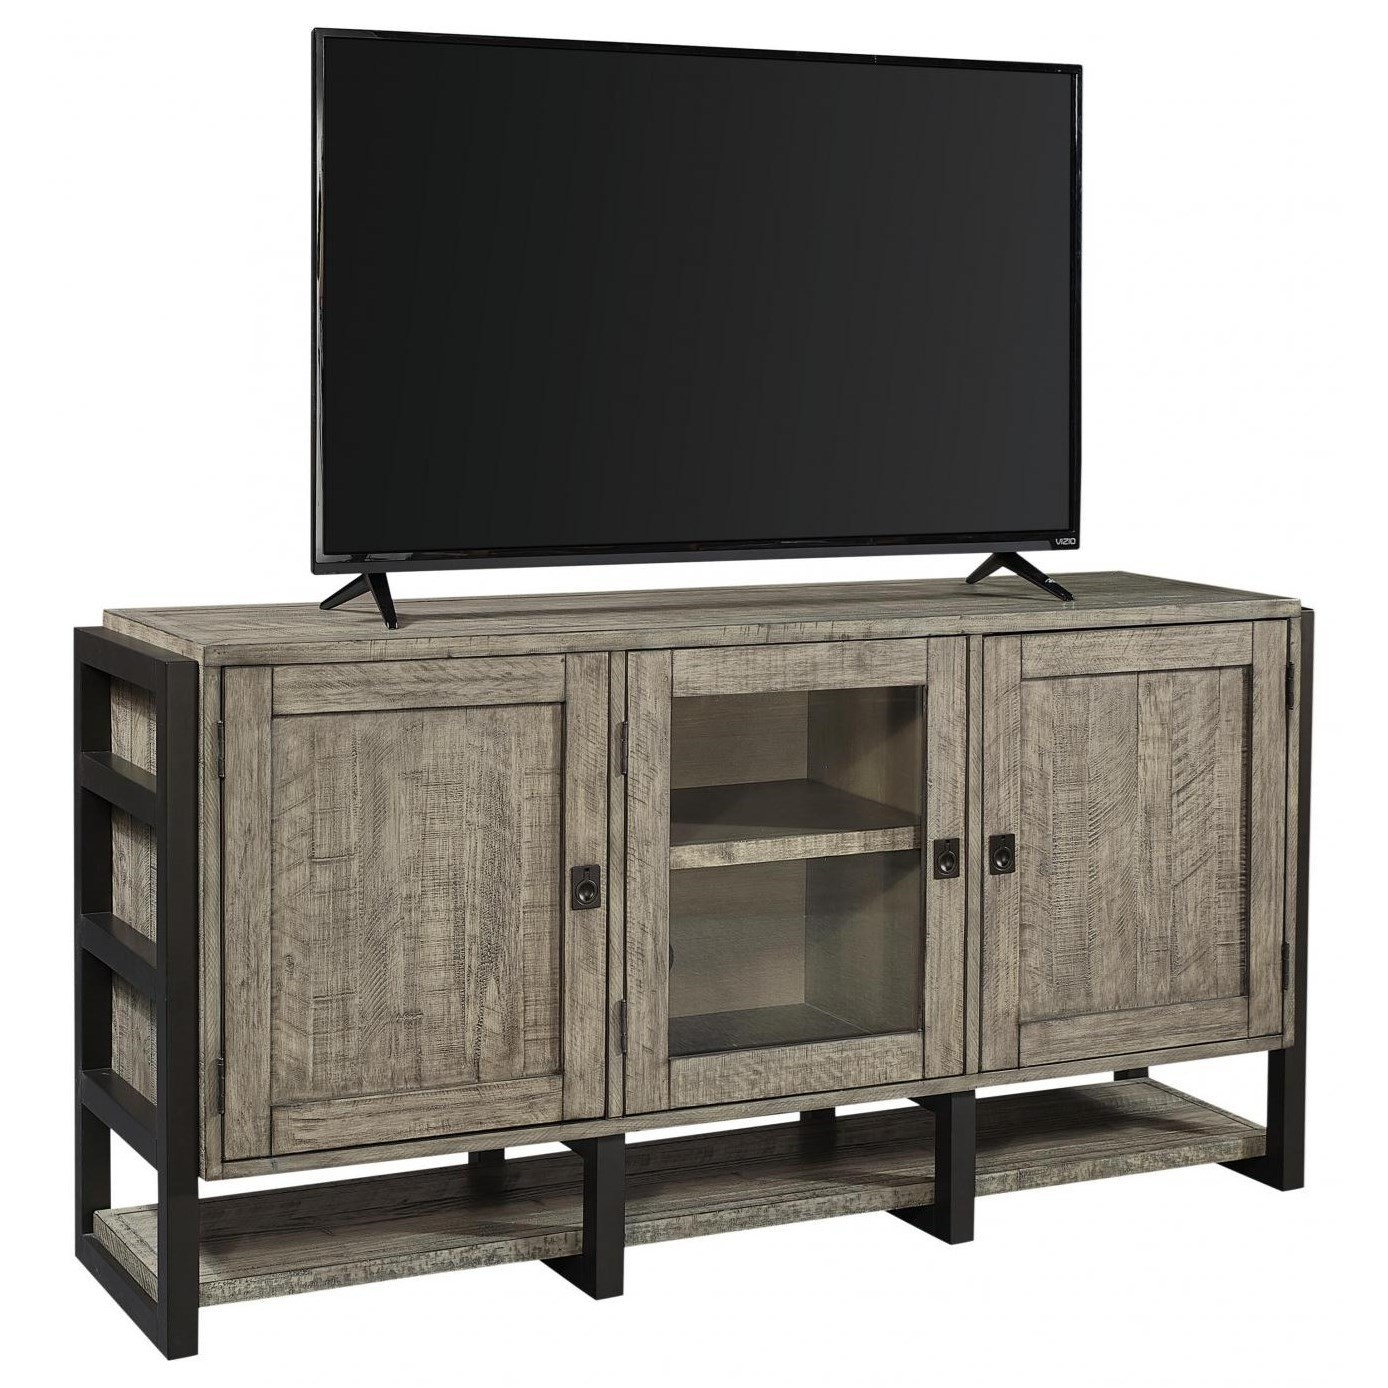 "Grayson 65"" Console by Aspenhome at Walker's Furniture"